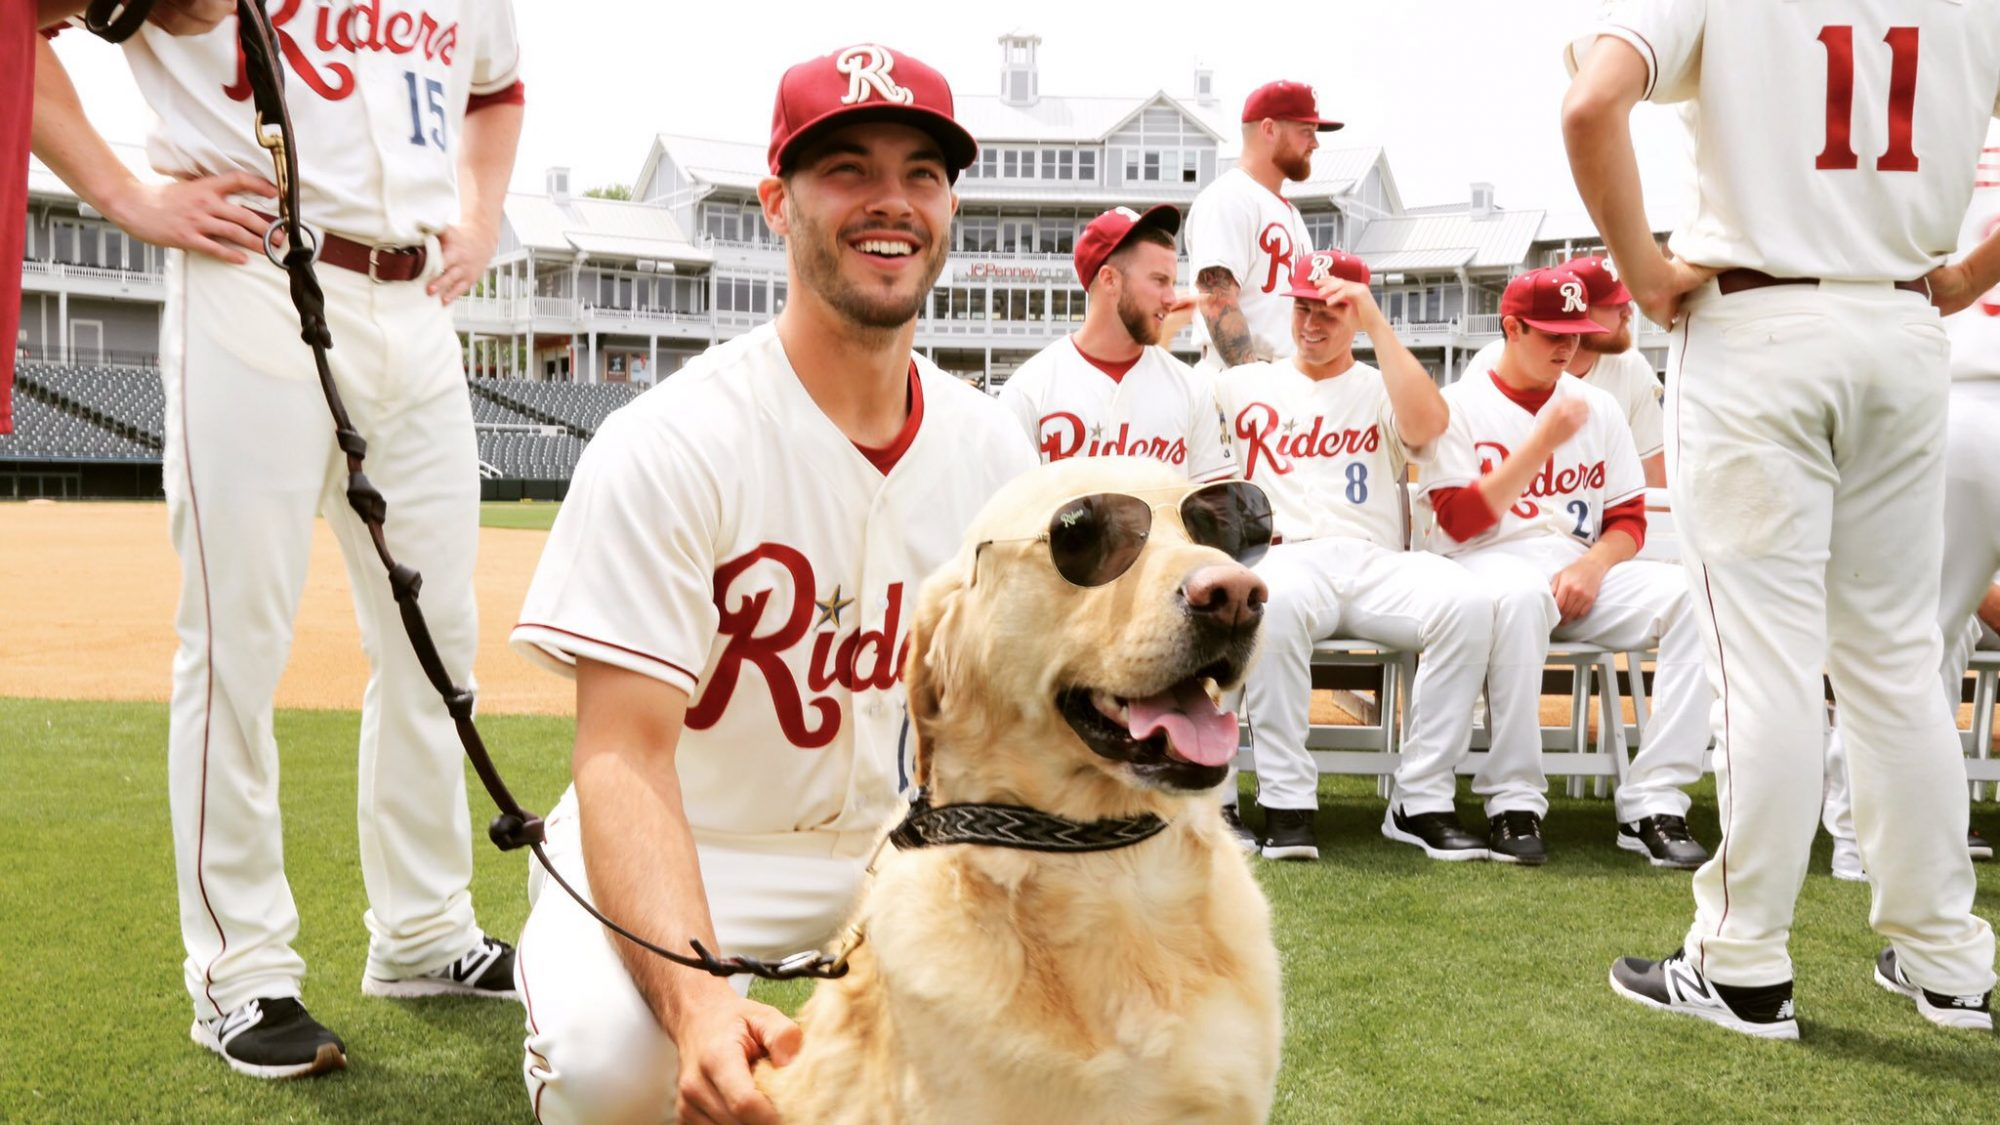 minor league baseball team dog does bad job